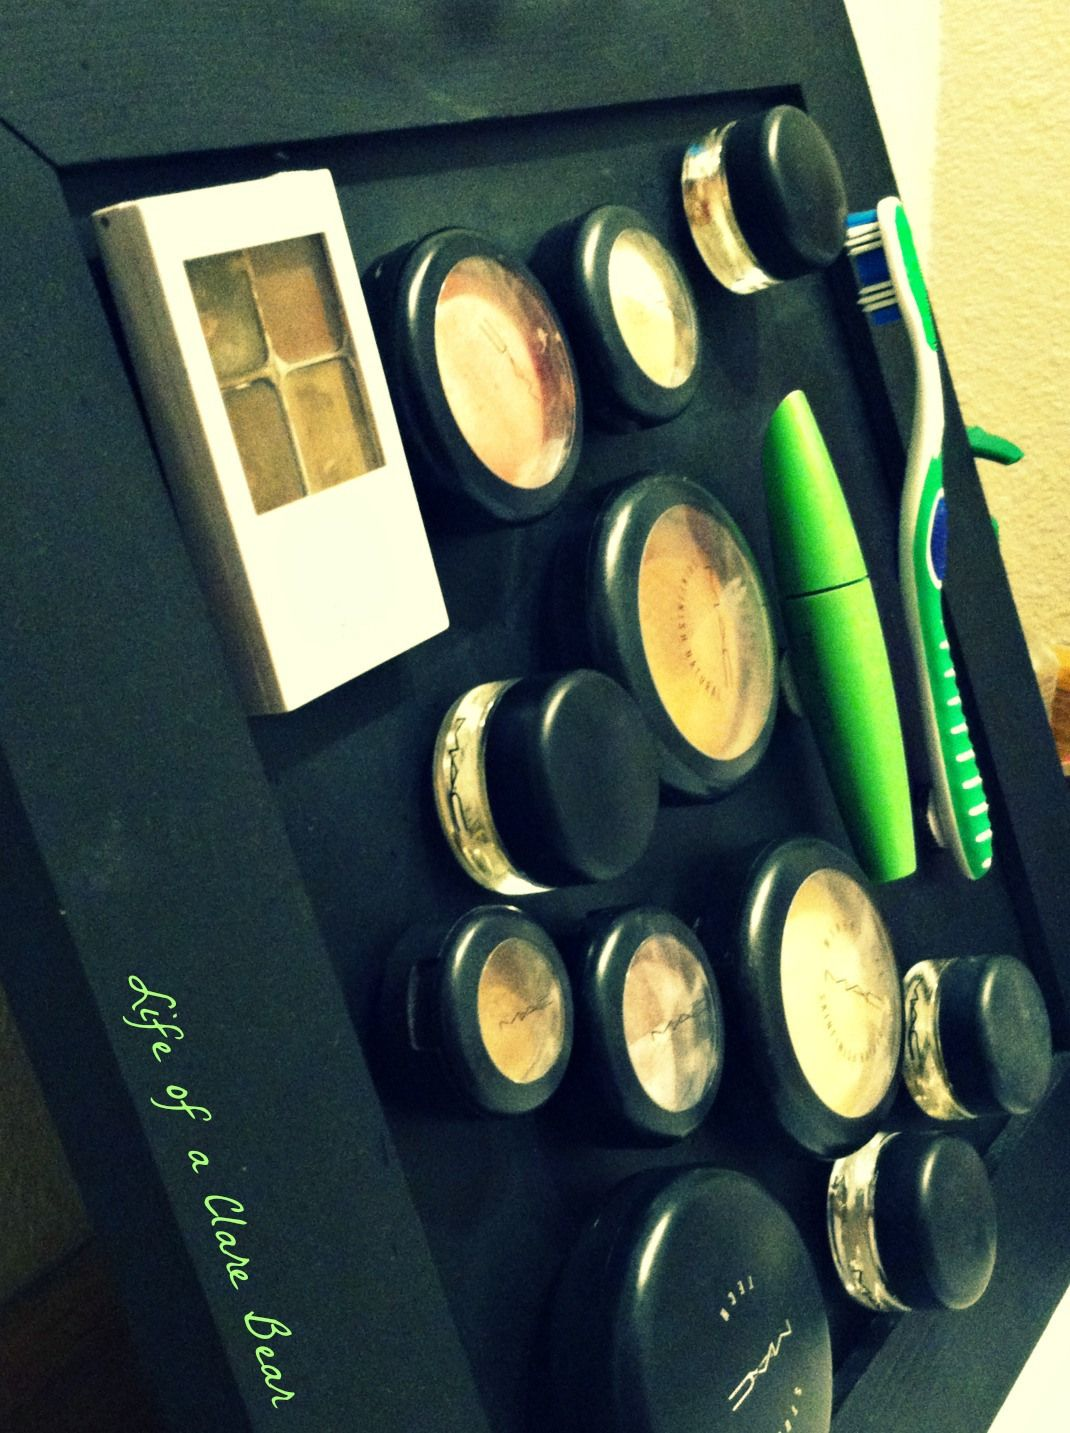 DIY makeup board because I am a MAC SNOB! Now I have so much more room for activities